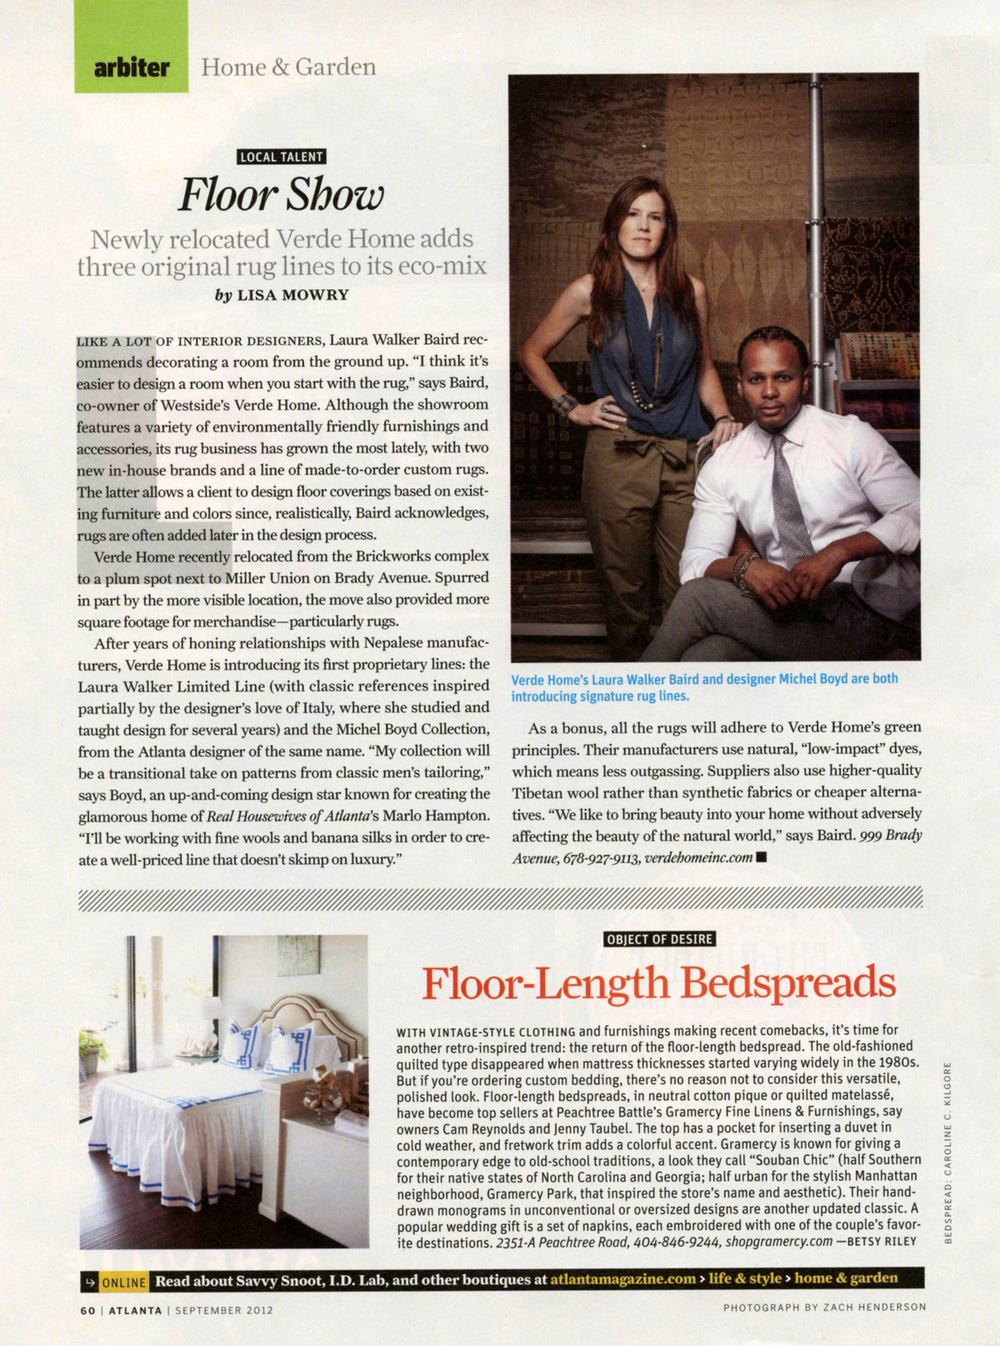 cropped_sept2012_atlantamag_pg1.jpg